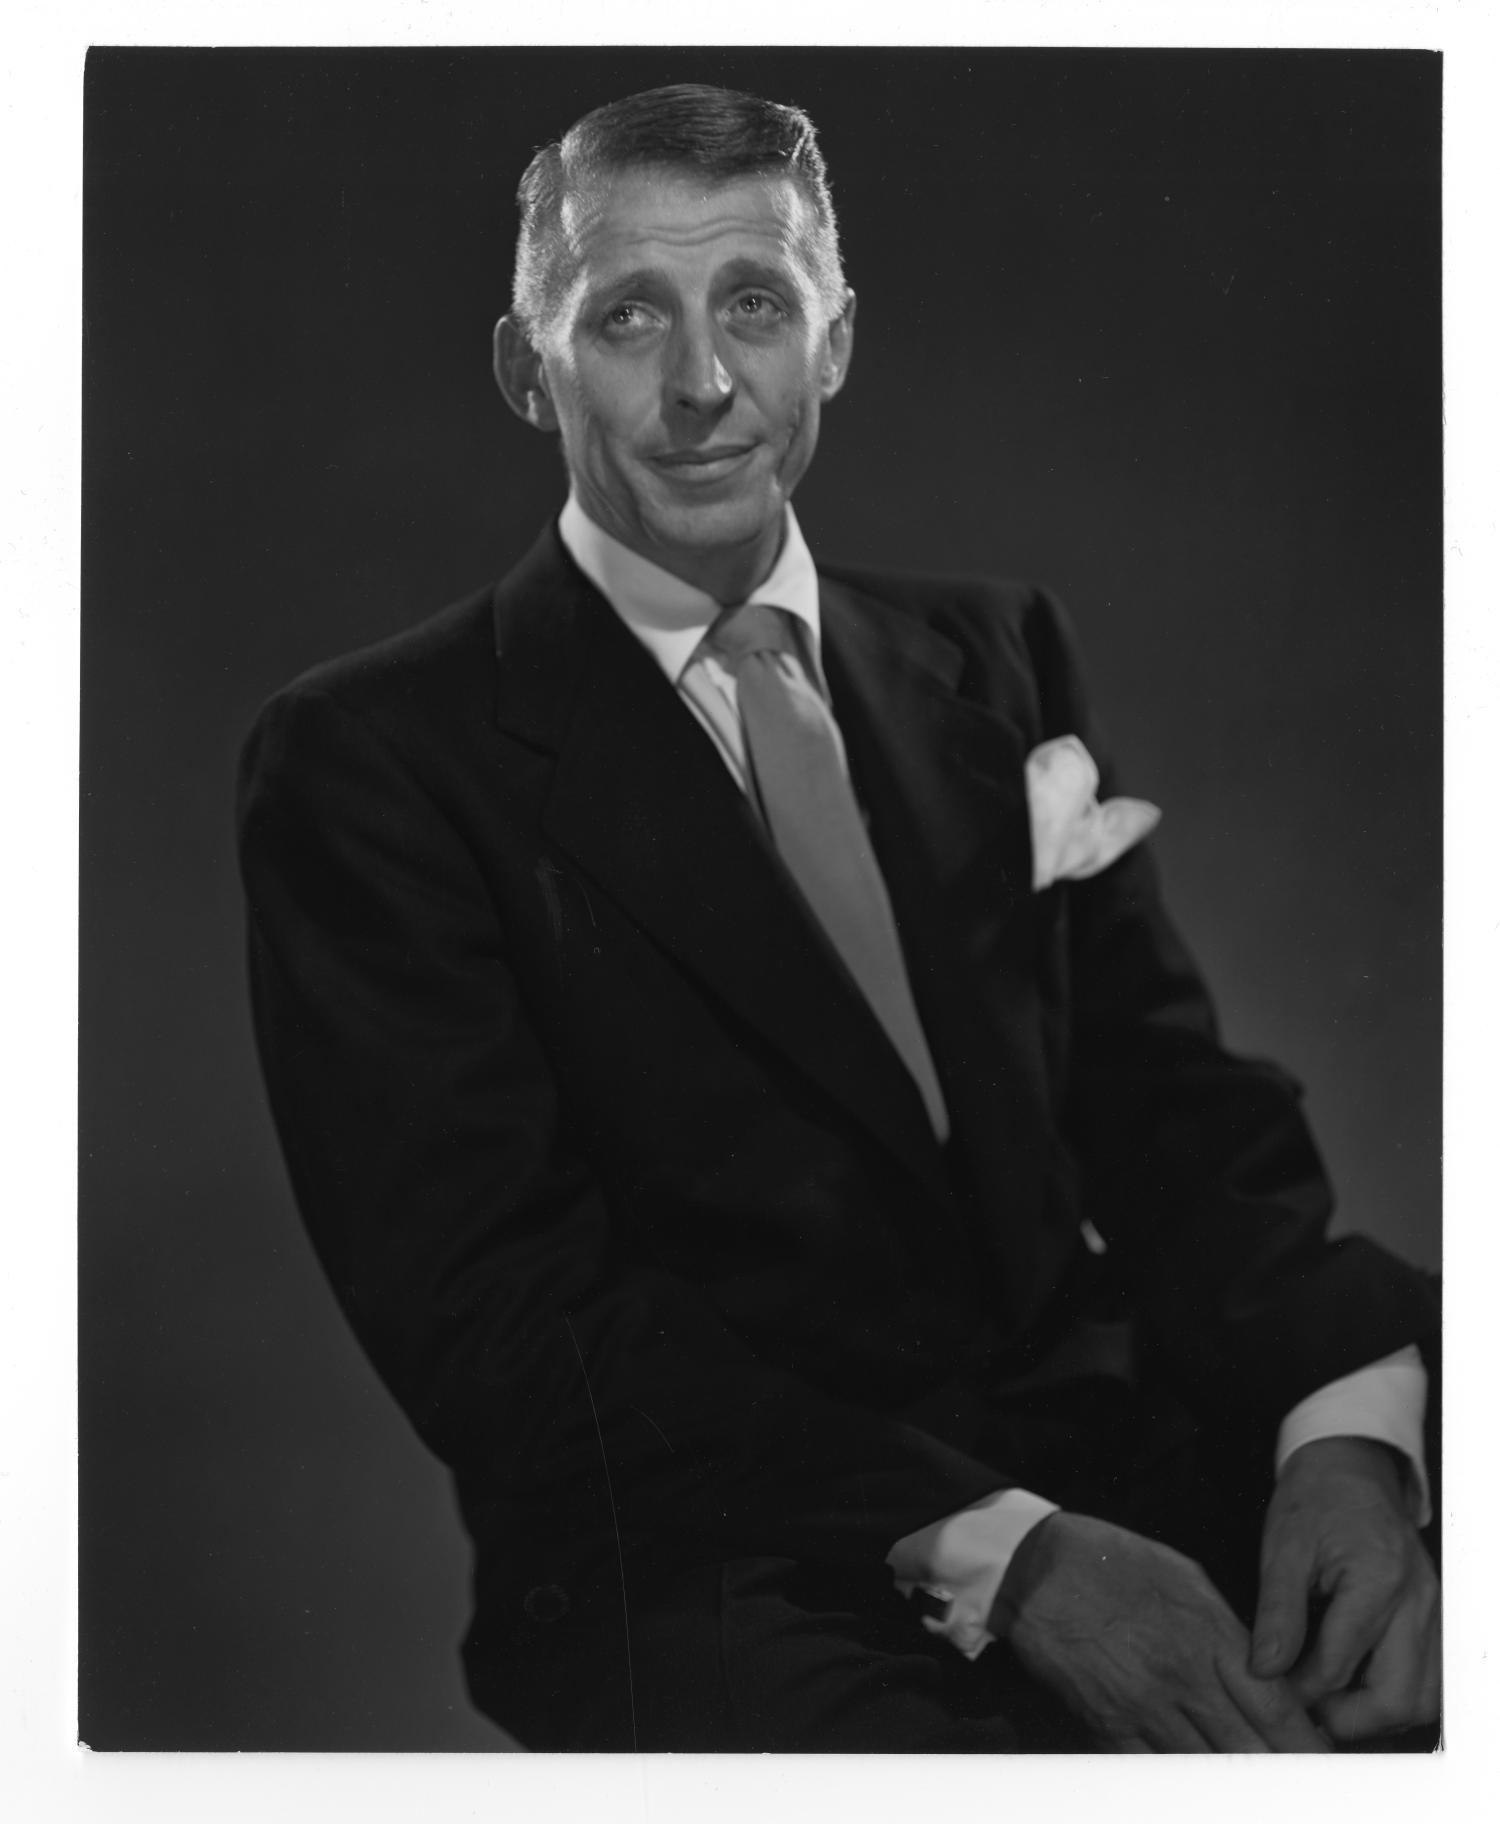 [Photograph of Stan Kenton]                                                                                                      [Sequence #]: 1 of 2